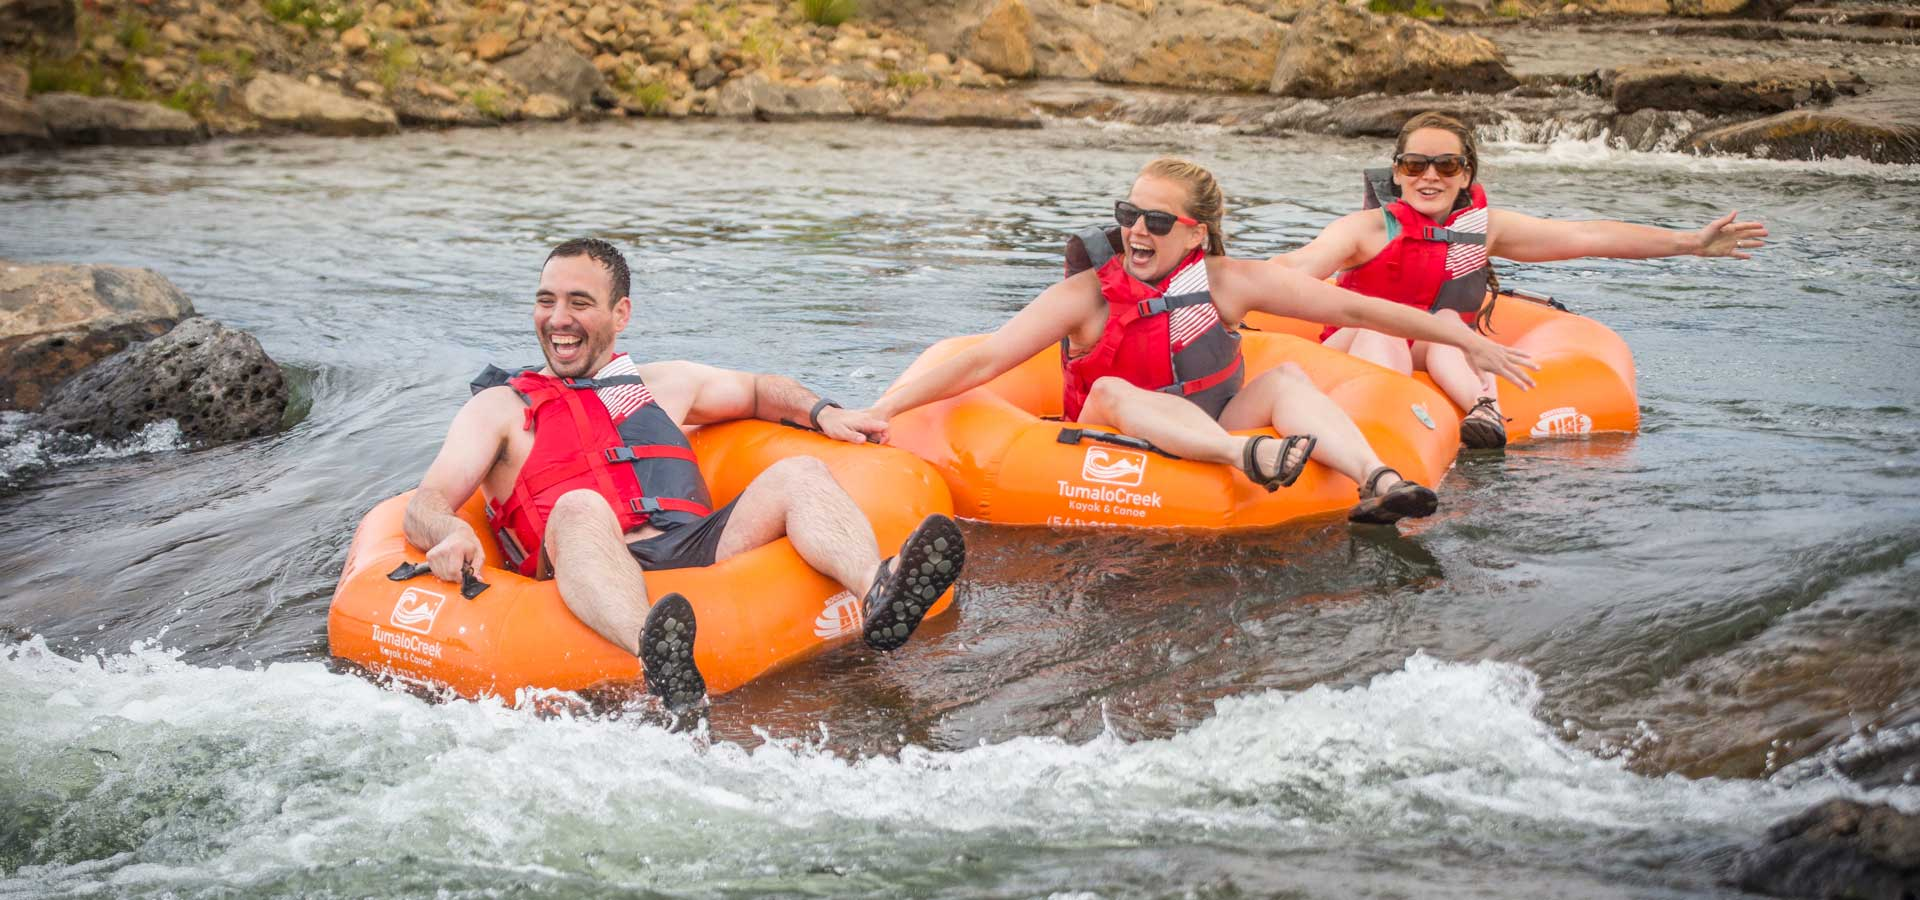 Group on tubes floating through rapids